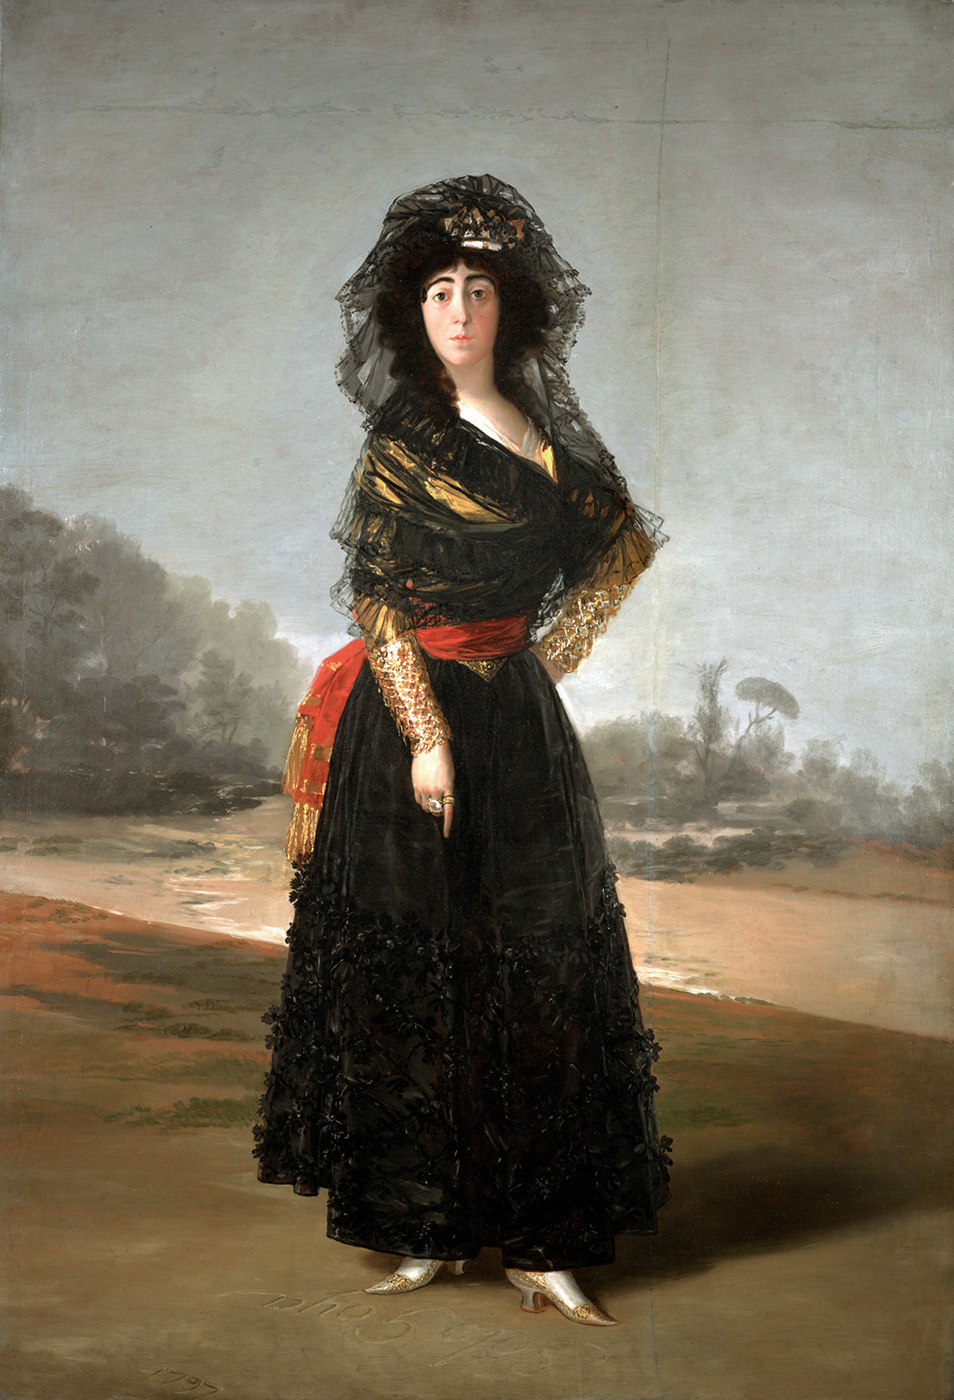 La duquesa de Alba, Francisco de Goya, 1797. Hispanic Society , Nueva York